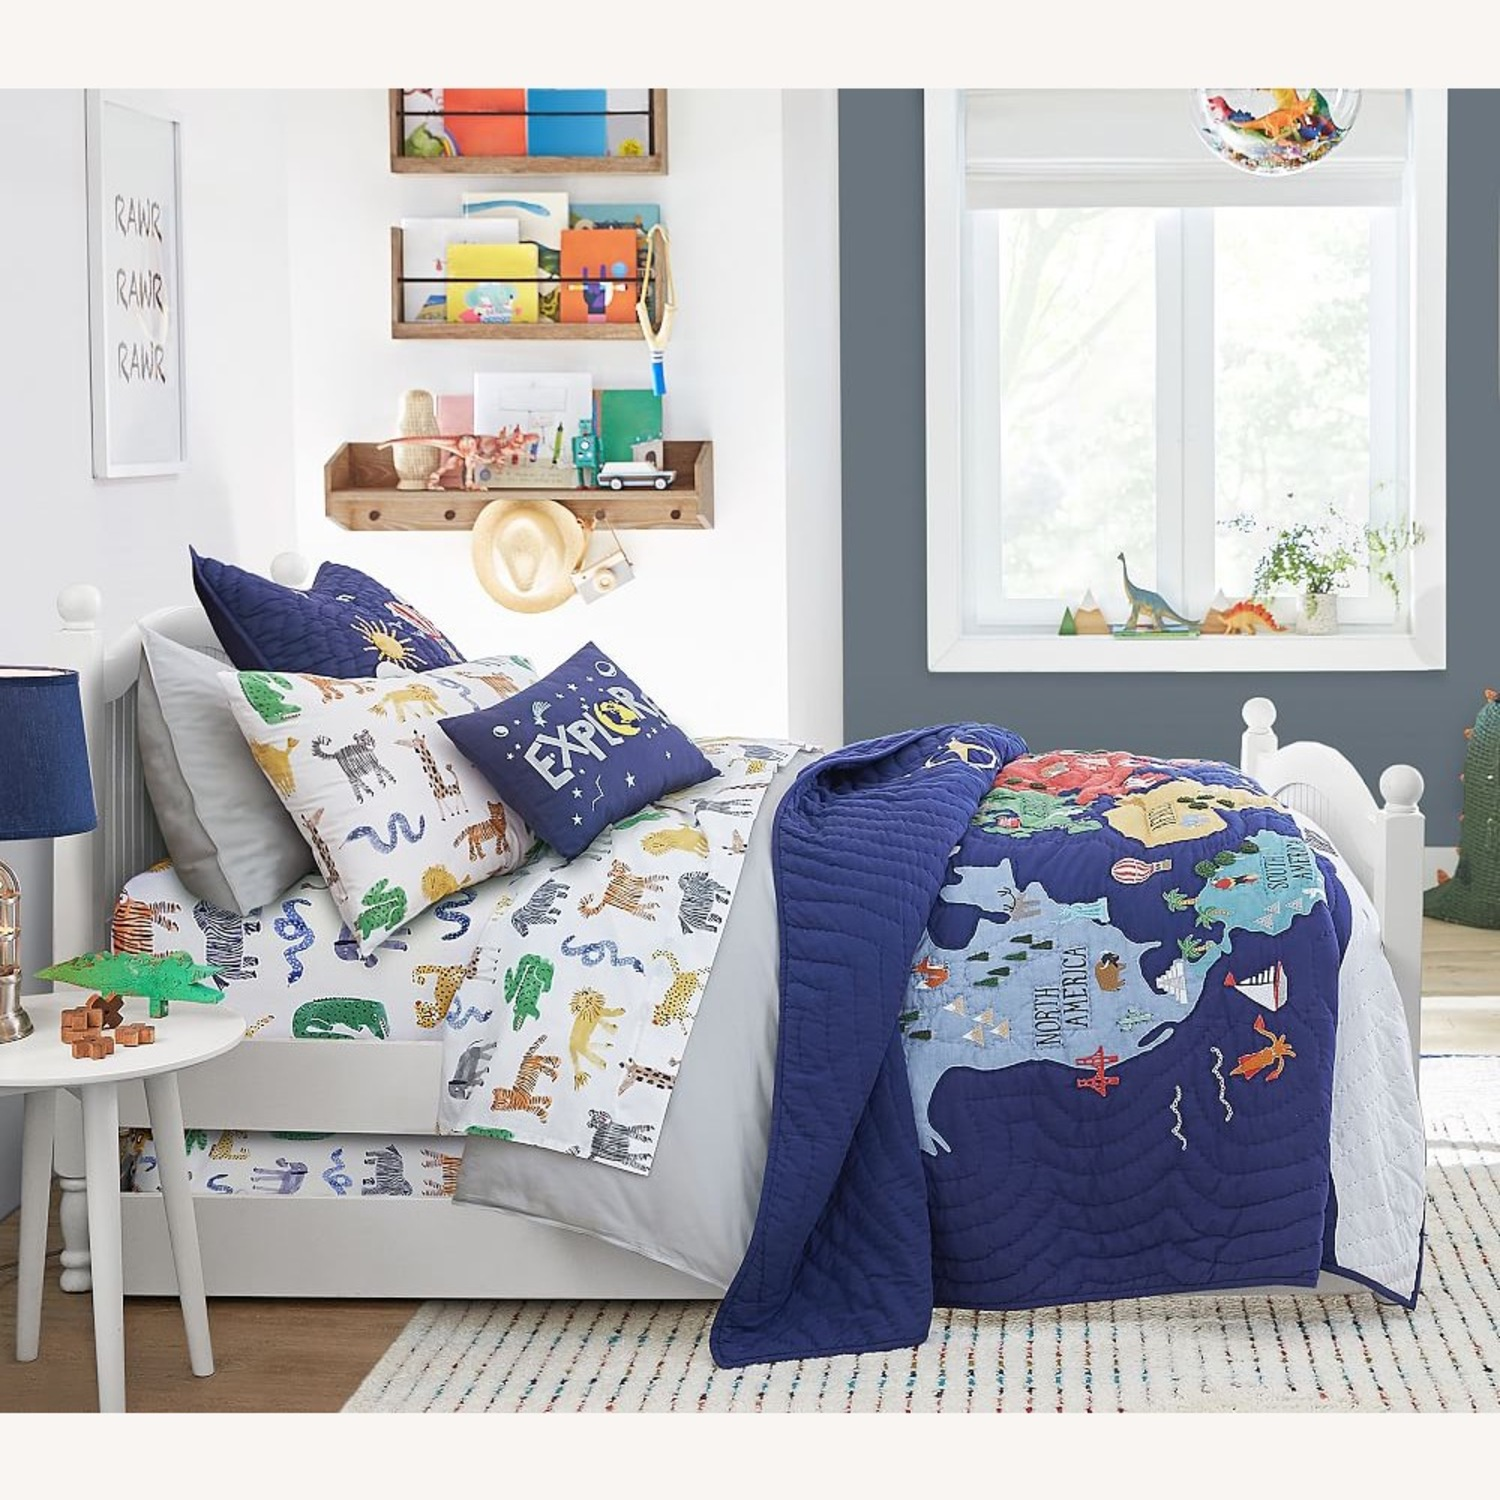 Pottery barn kids bed with trundle - image-1